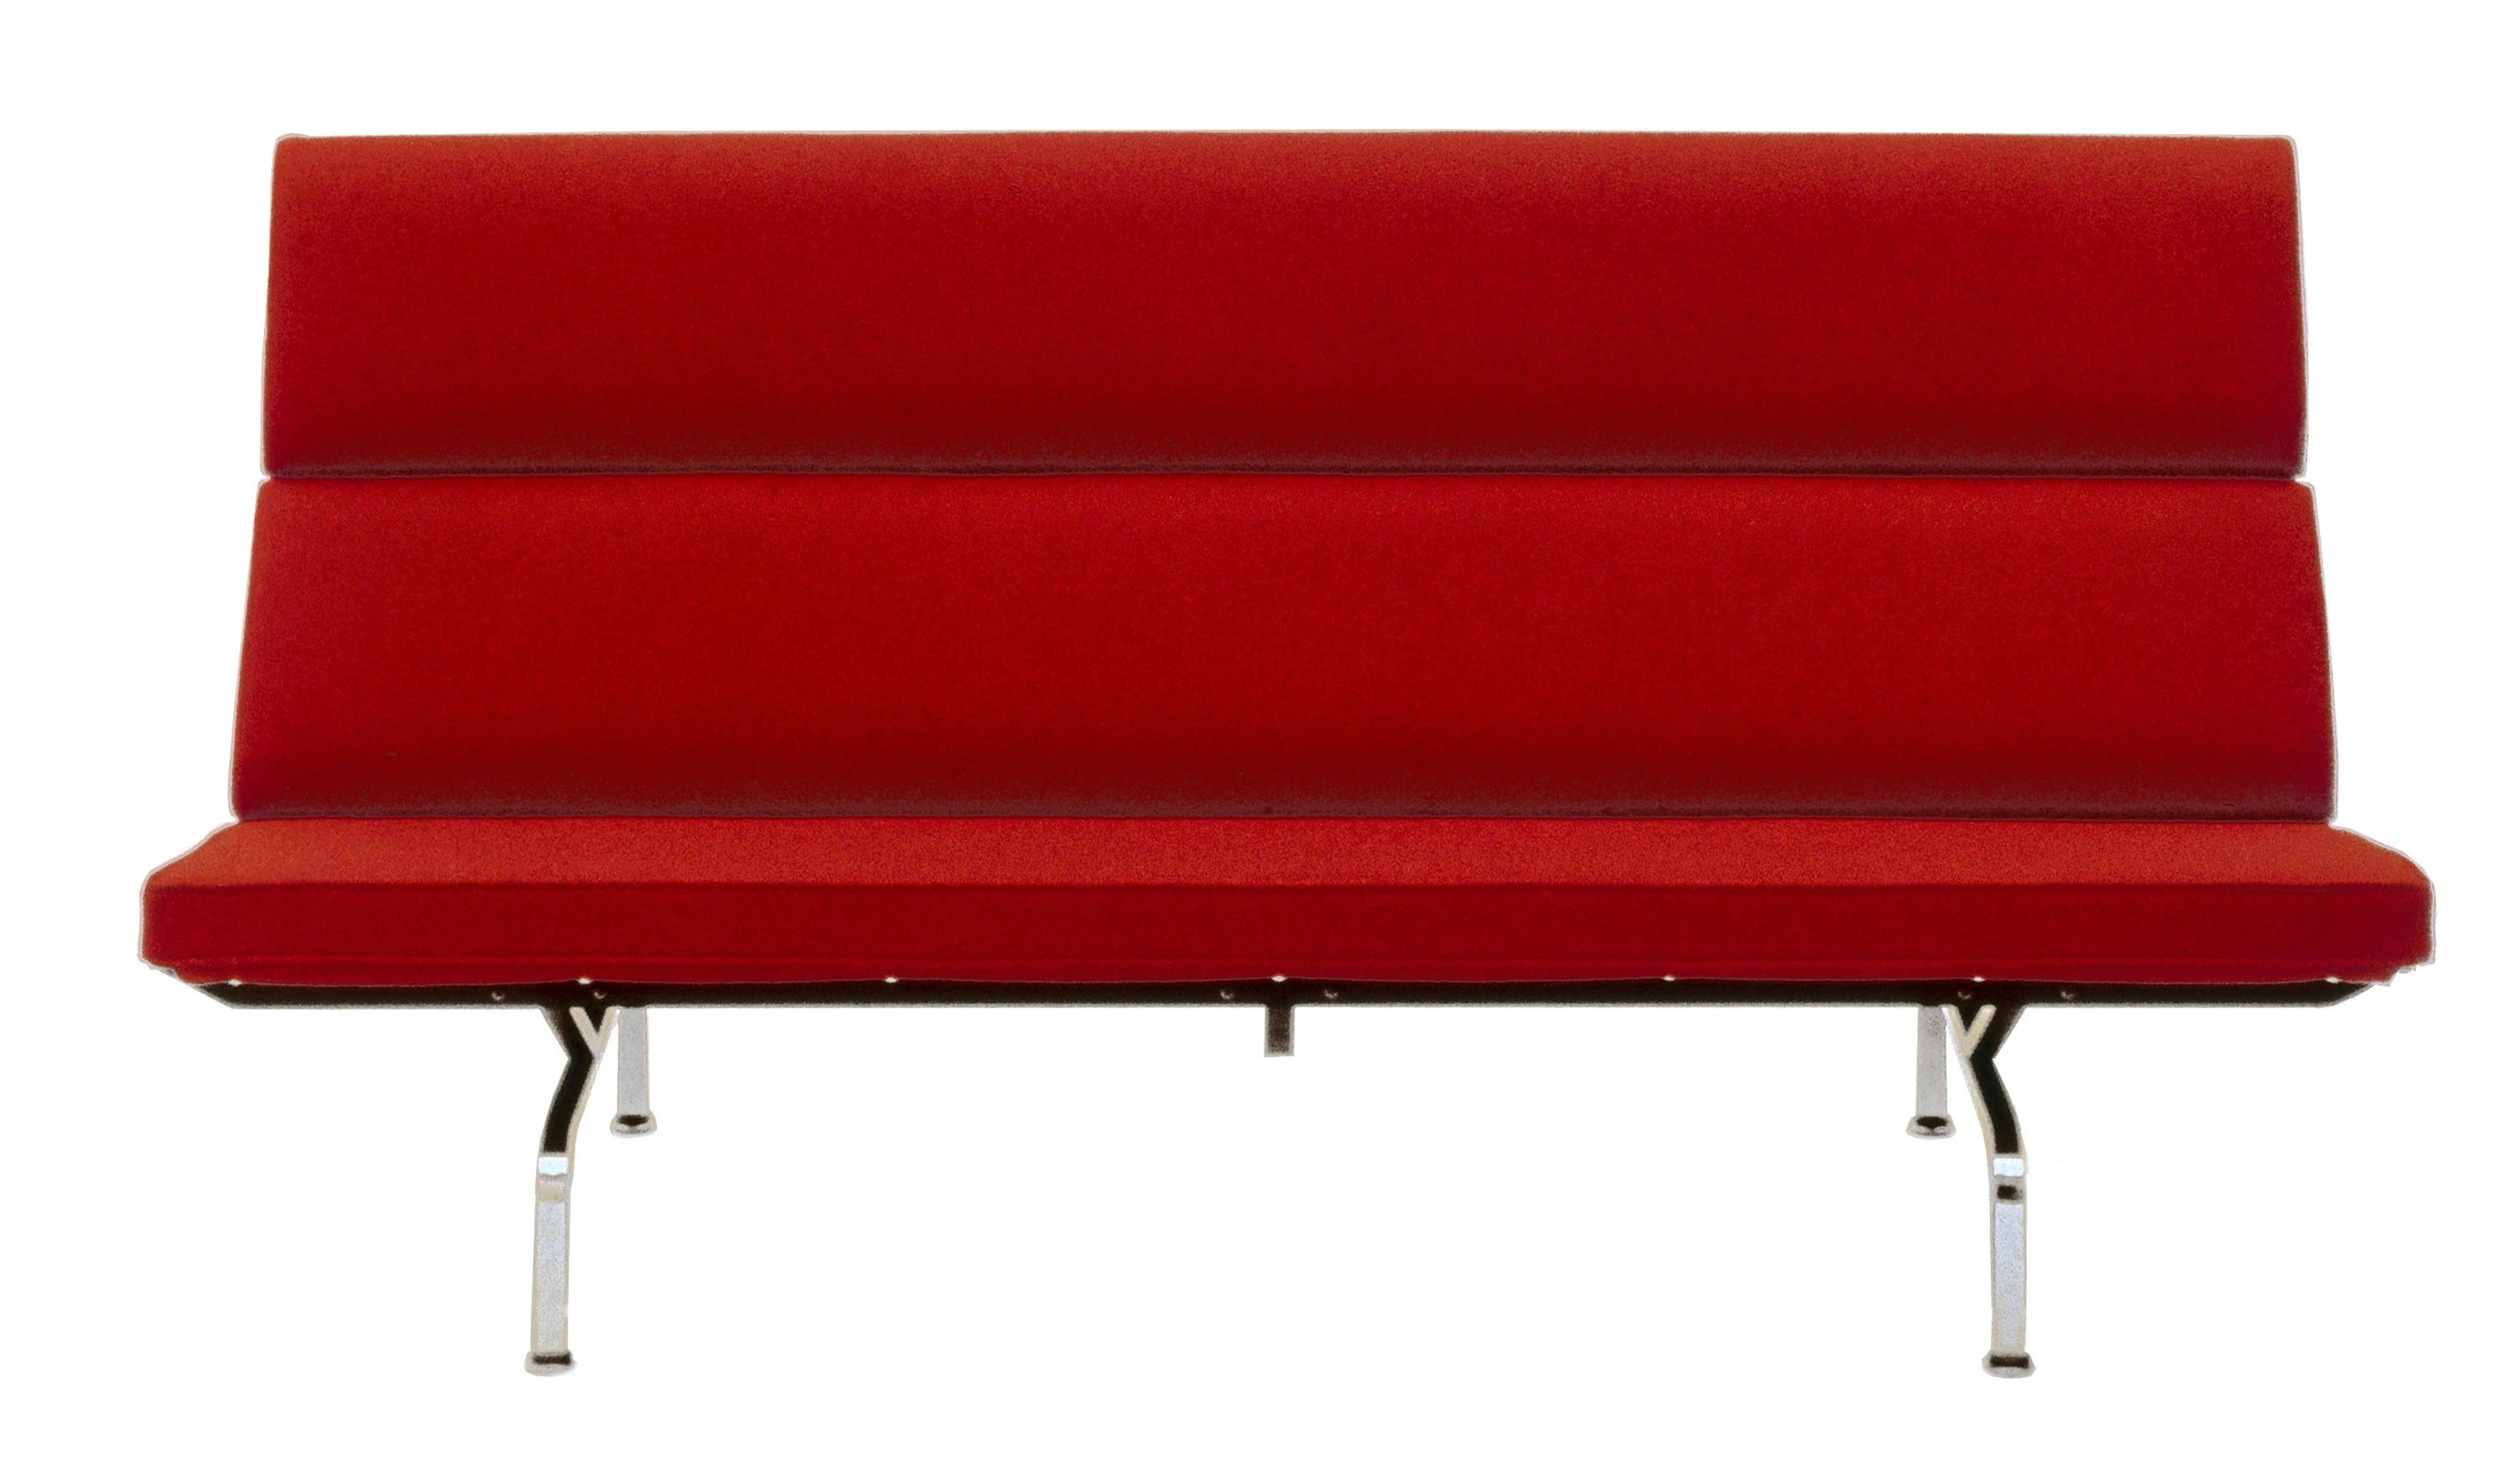 eames sofa compact knockoff can i reupholster my leather with fabric herman miller gradschoolfairs